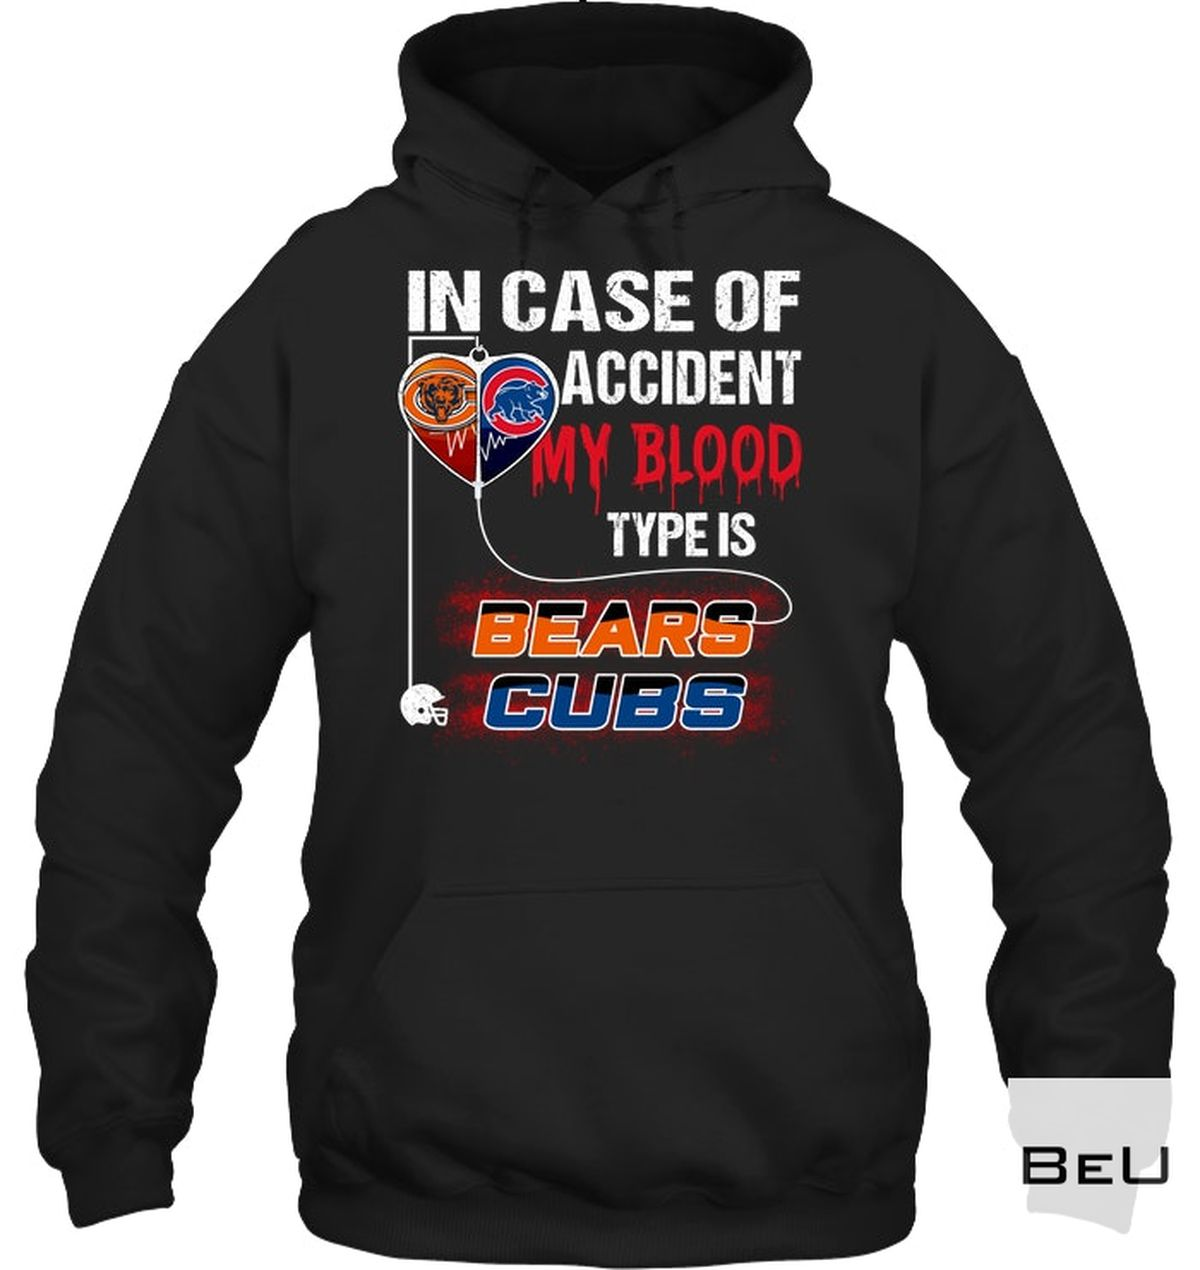 Great artwork! In Case Of Accident My Blood Type Is Beers Clubs Shirt, hoodie, tank top